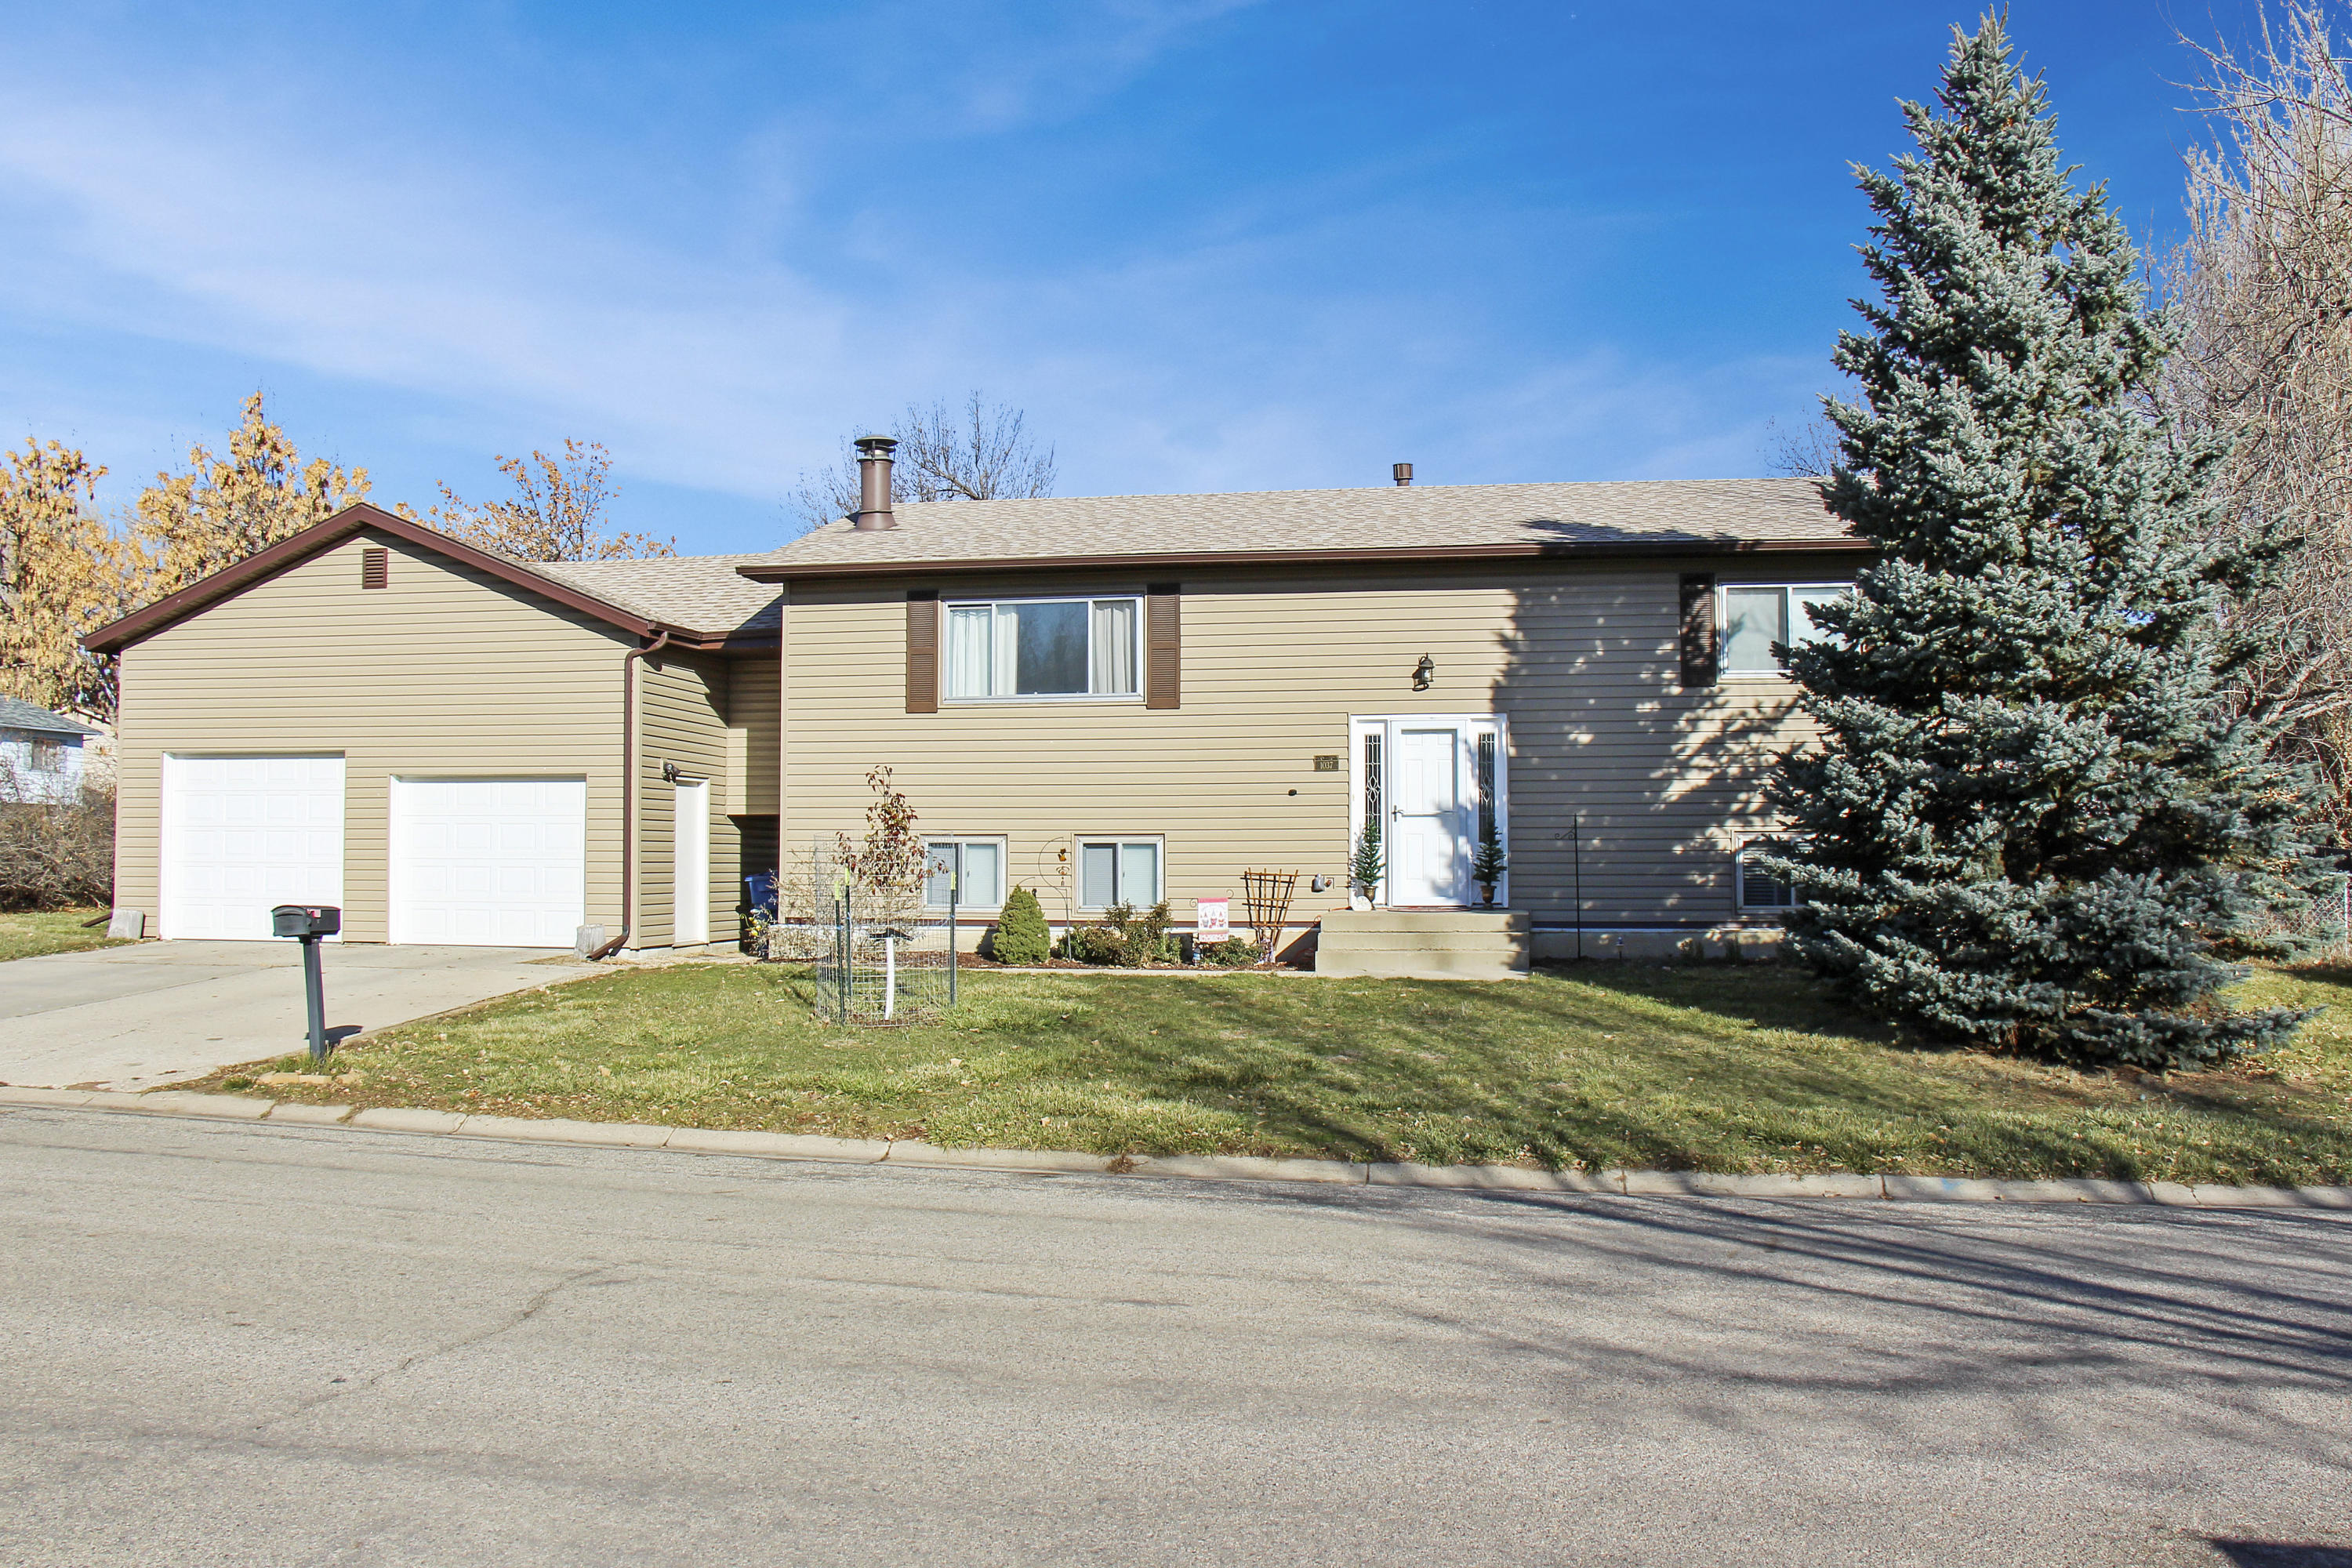 1037 12th Street, Sheridan, Wyoming 82801, 3 Bedrooms Bedrooms, ,2 BathroomsBathrooms,Residential,For Sale,12th,18-1208